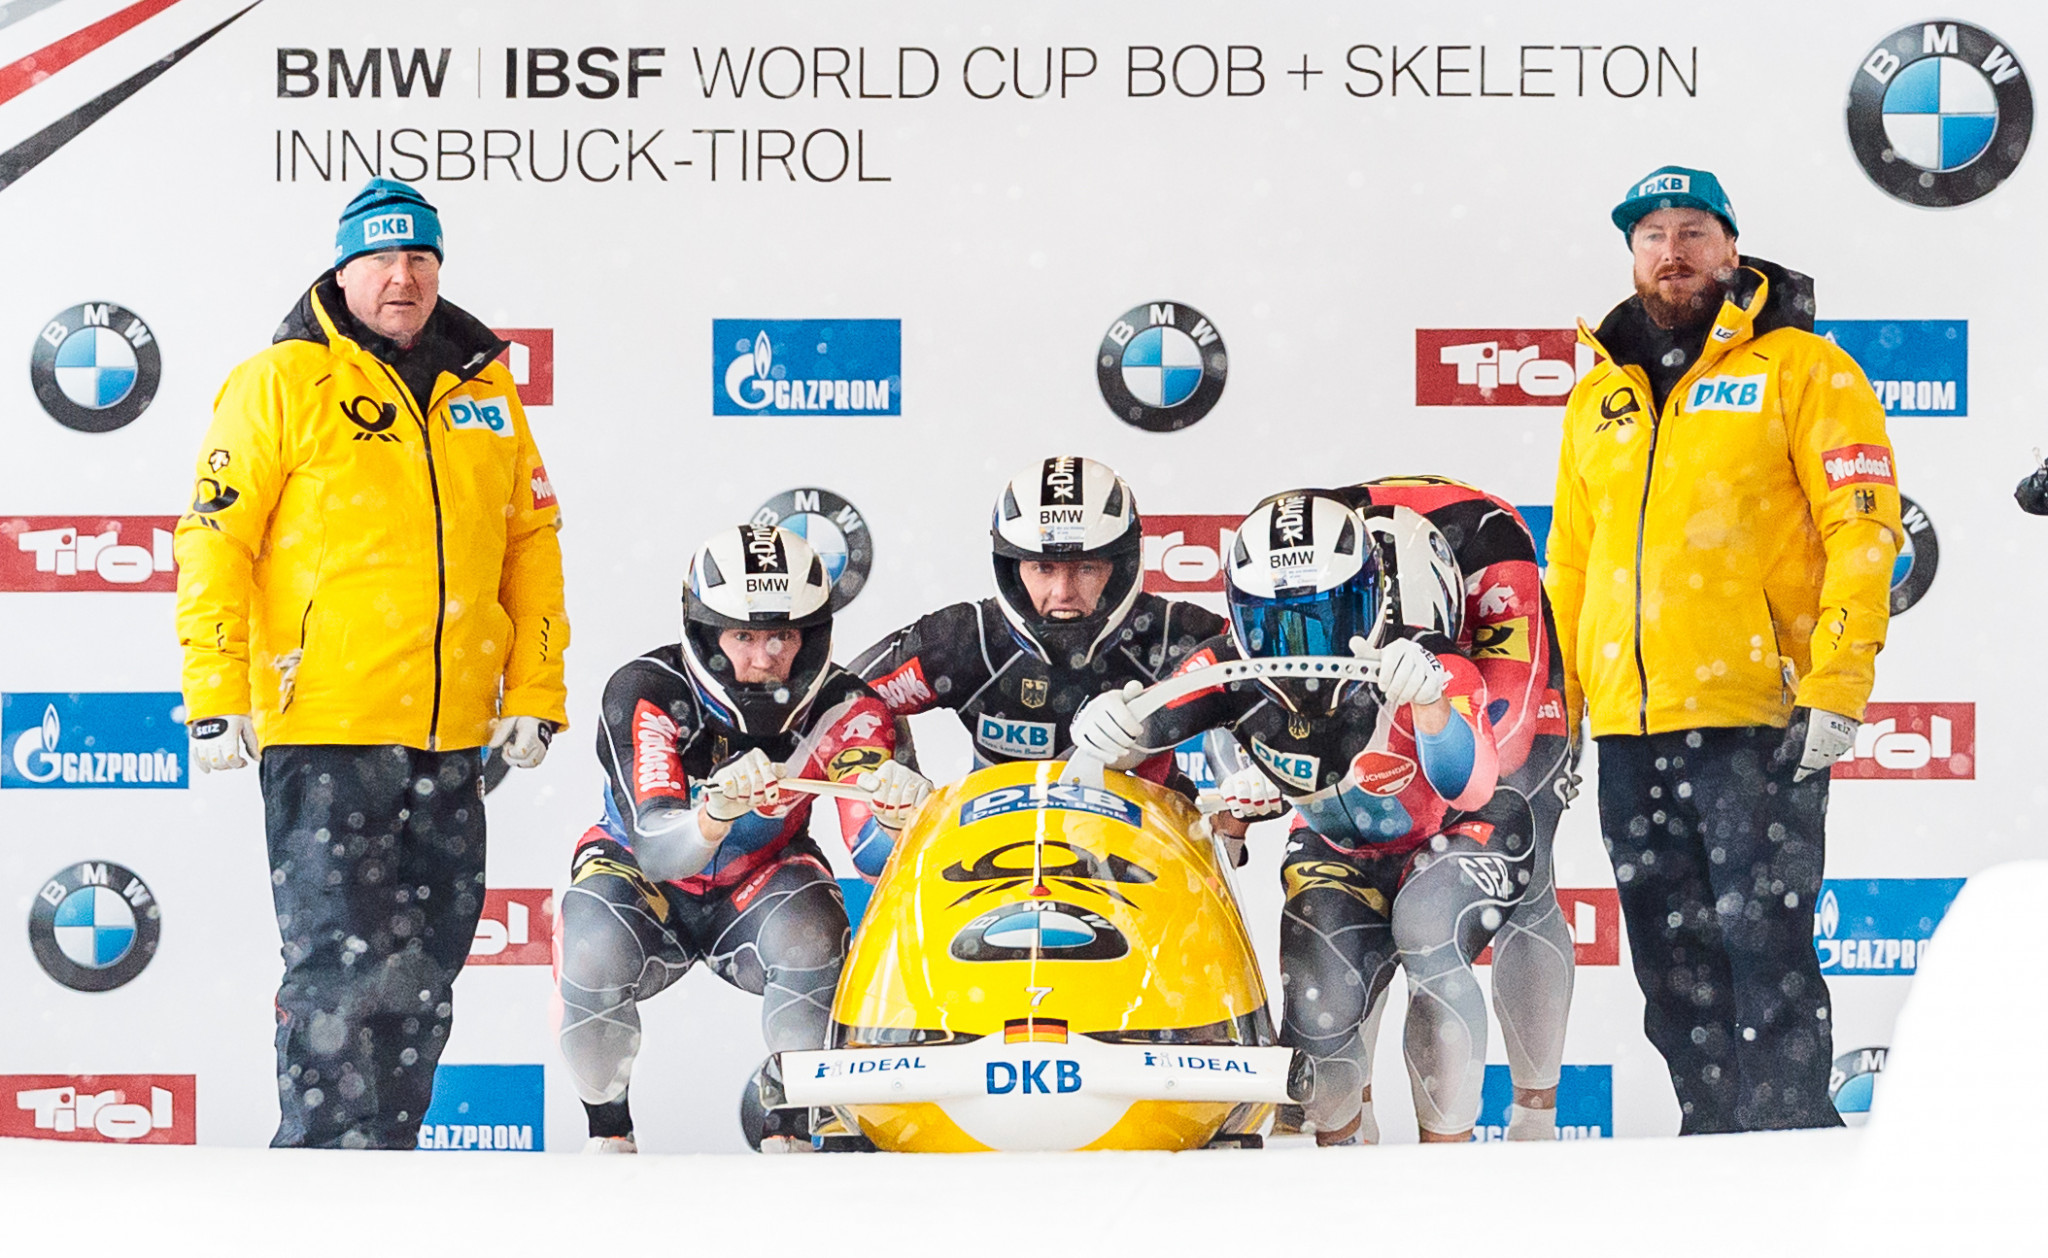 Innsbruck will now stage three IBSF World Cup legs this season ©Getty Images